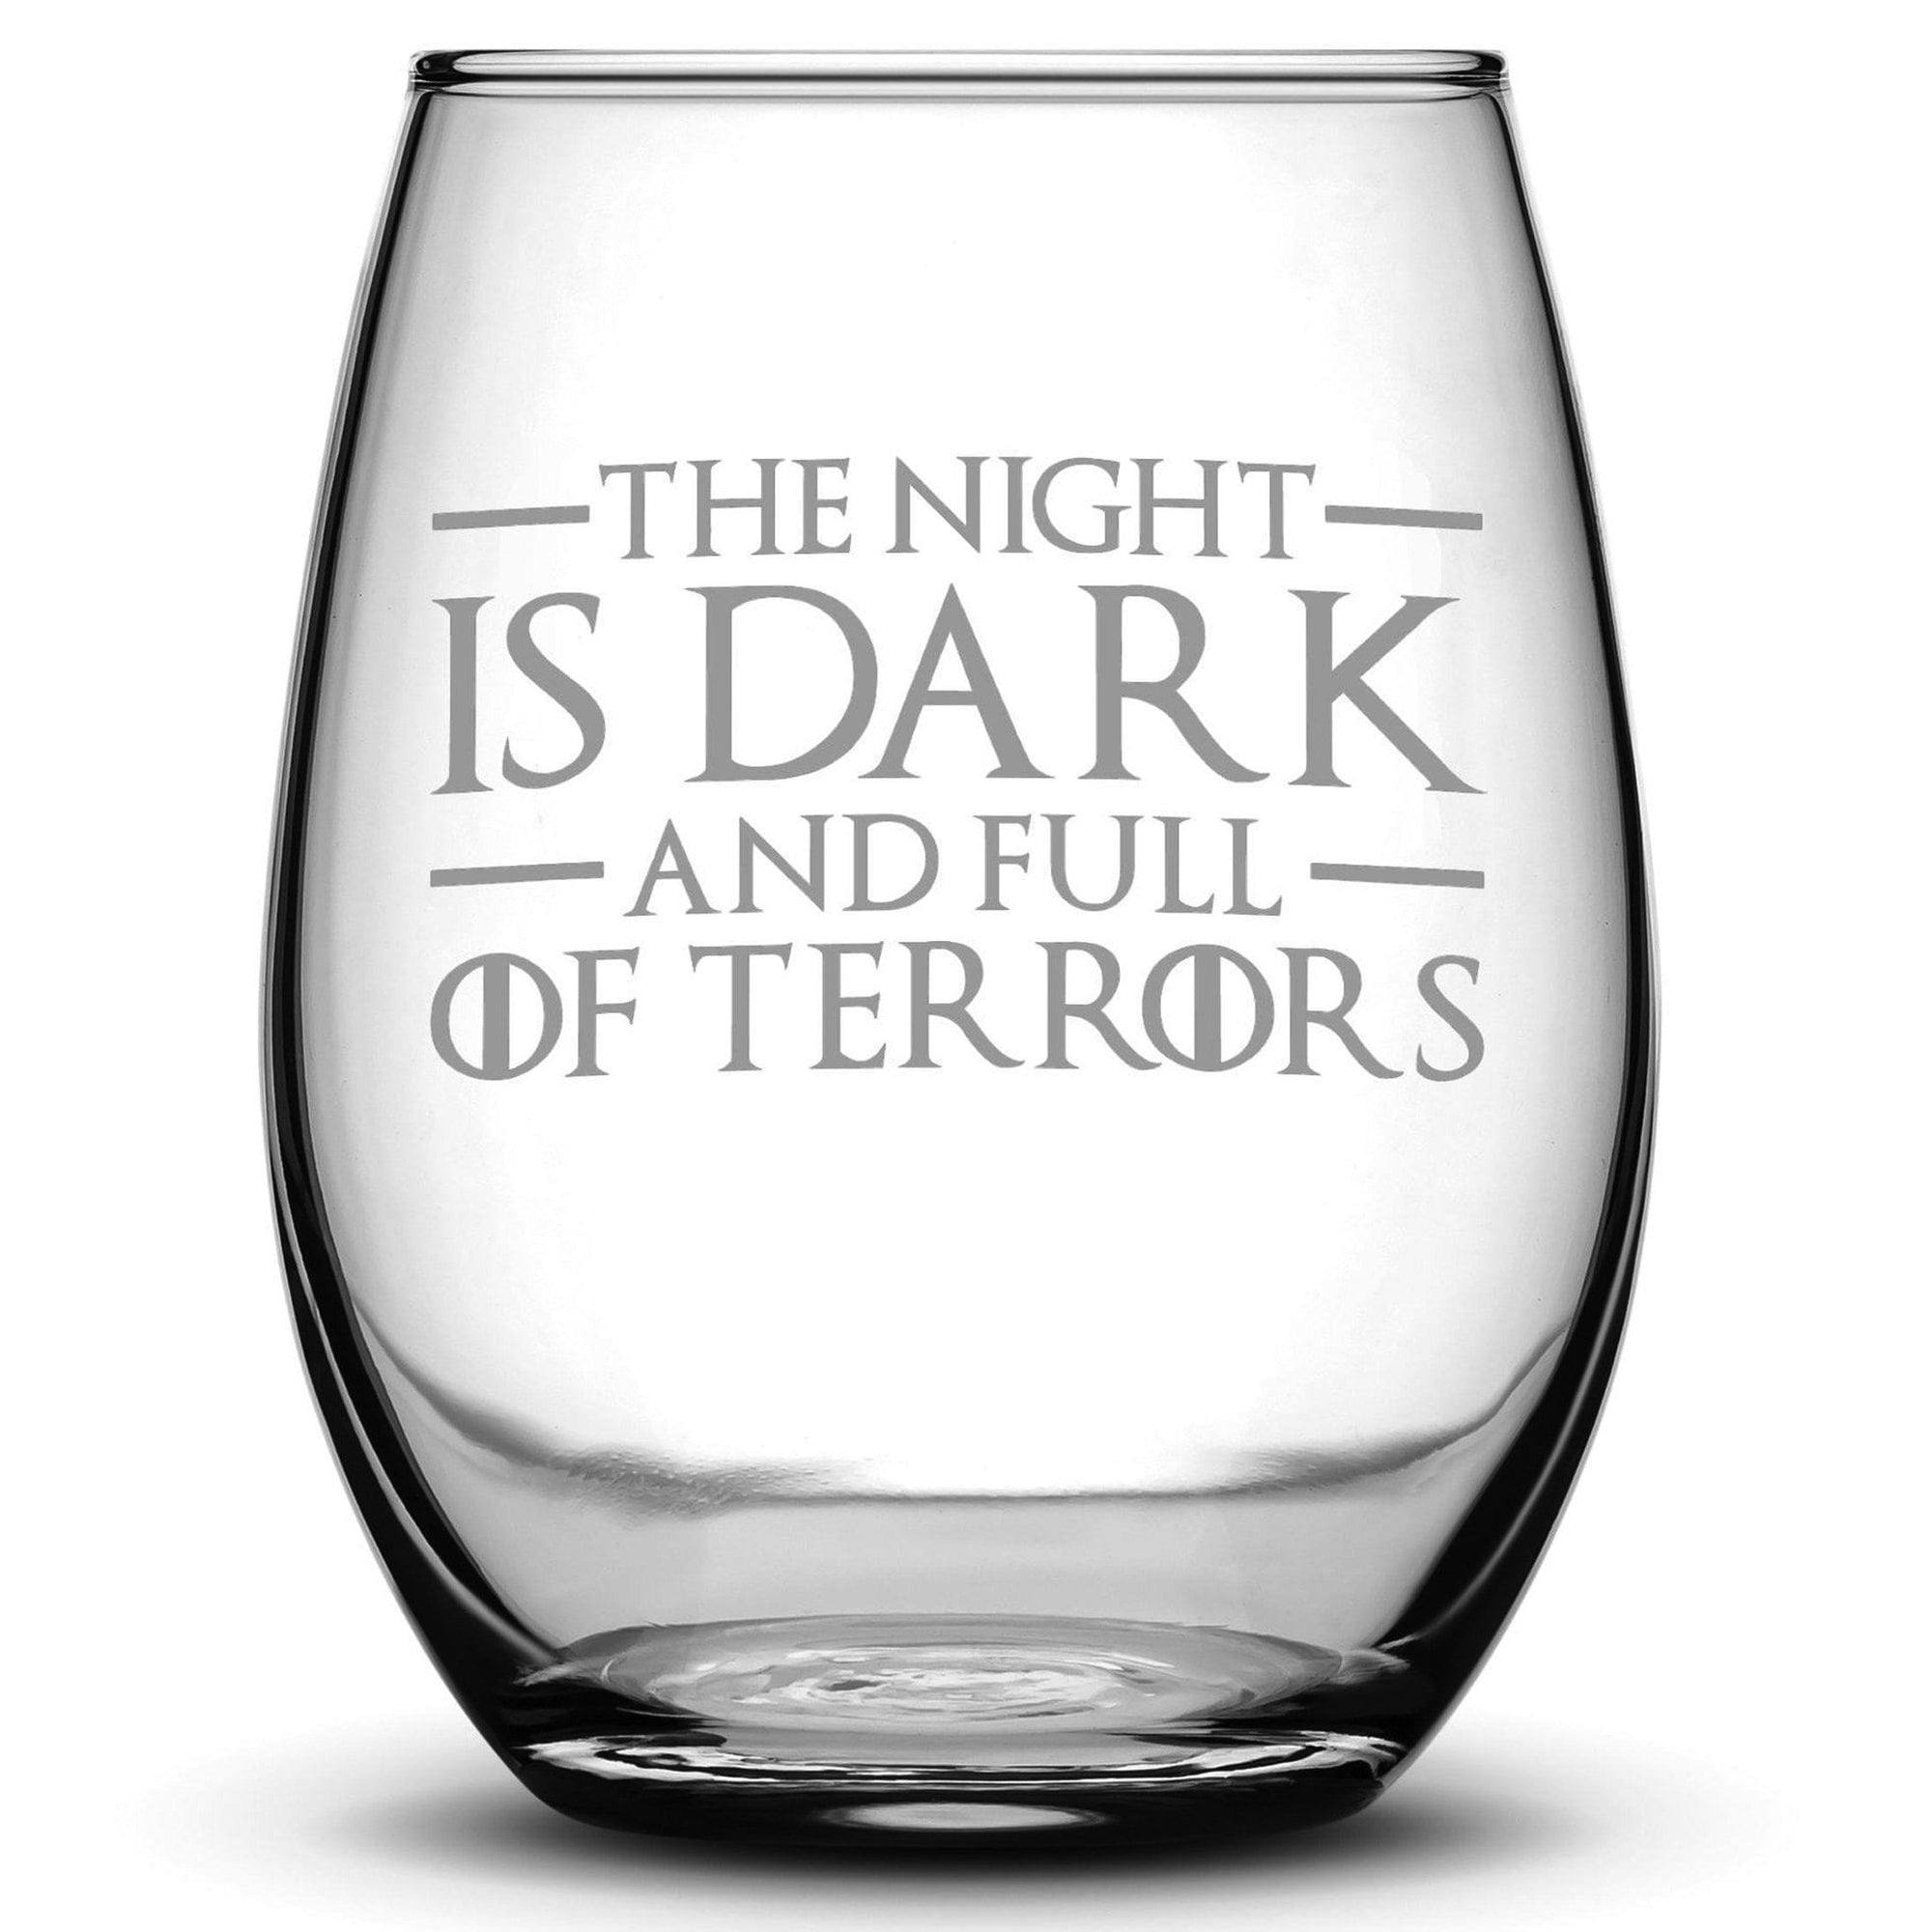 Premium Wine Glass, Game of Thrones, The Night is Dark and Full of Terrors, 15oz Integrity Bottles